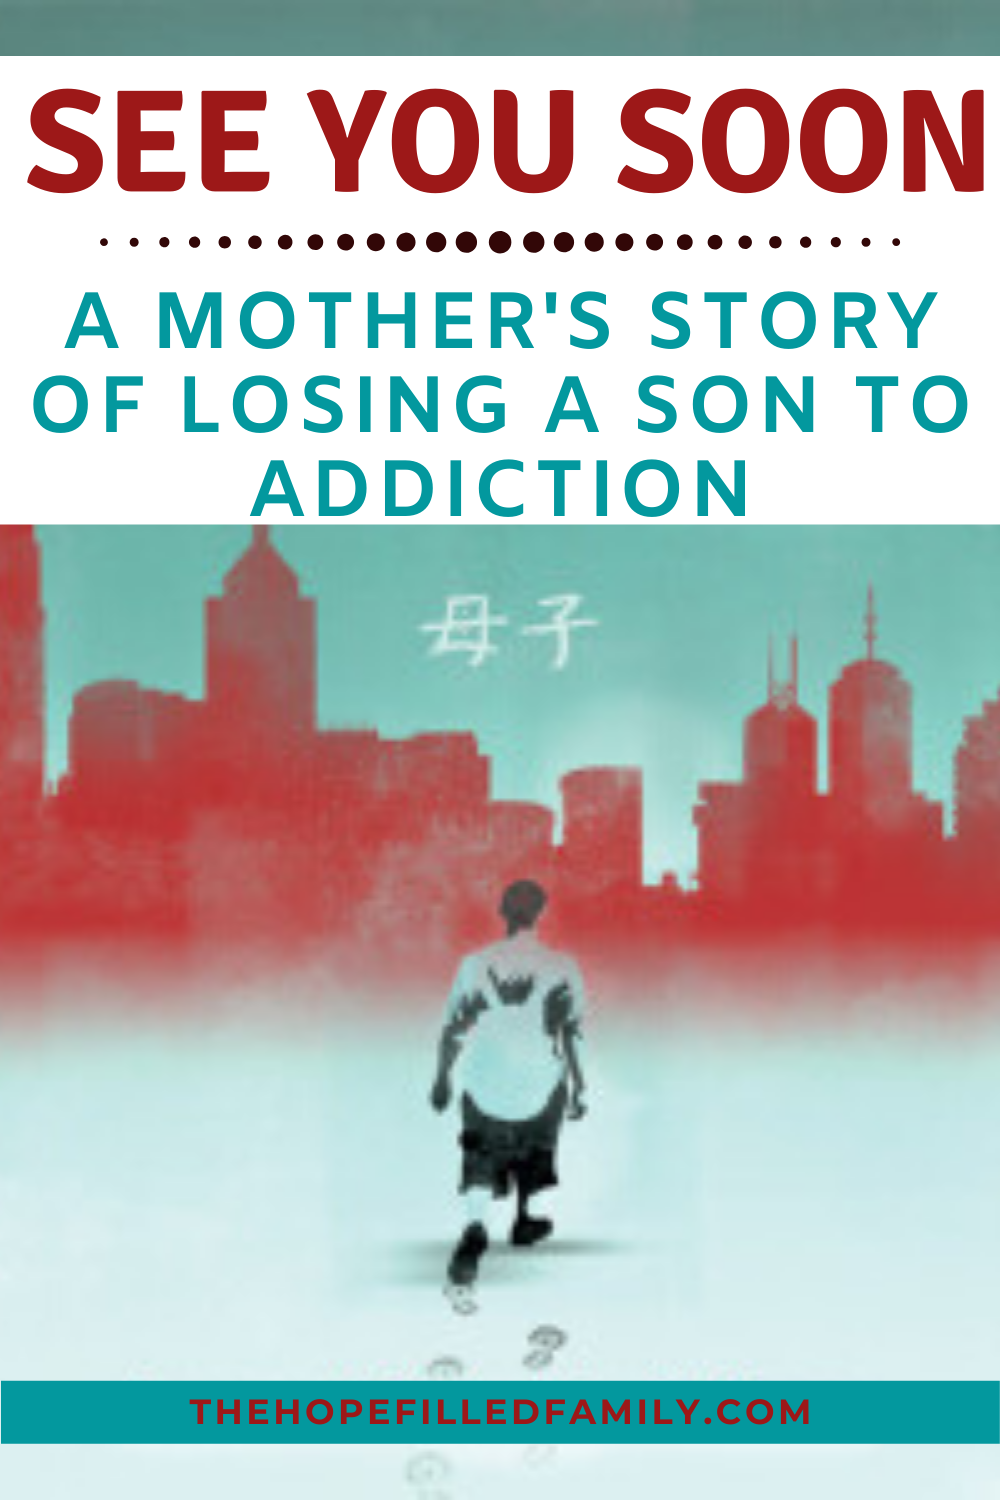 A Christian parent's story of losing a son to addiction. Death by drugs is a taboo, not least in Christian circles. So how did this couple cope?